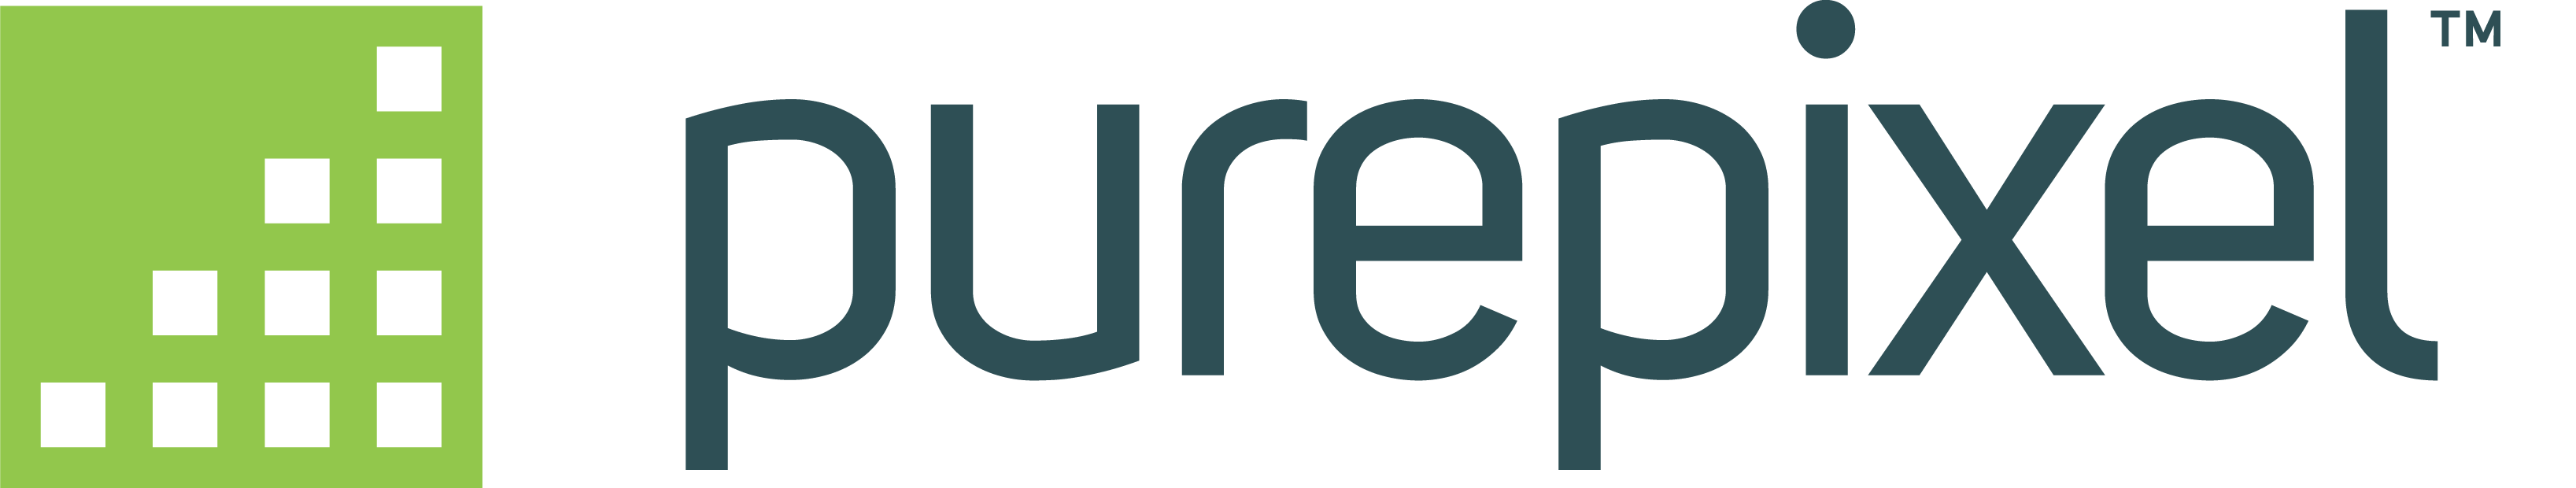 PurePixel-logo_Updated 07182019